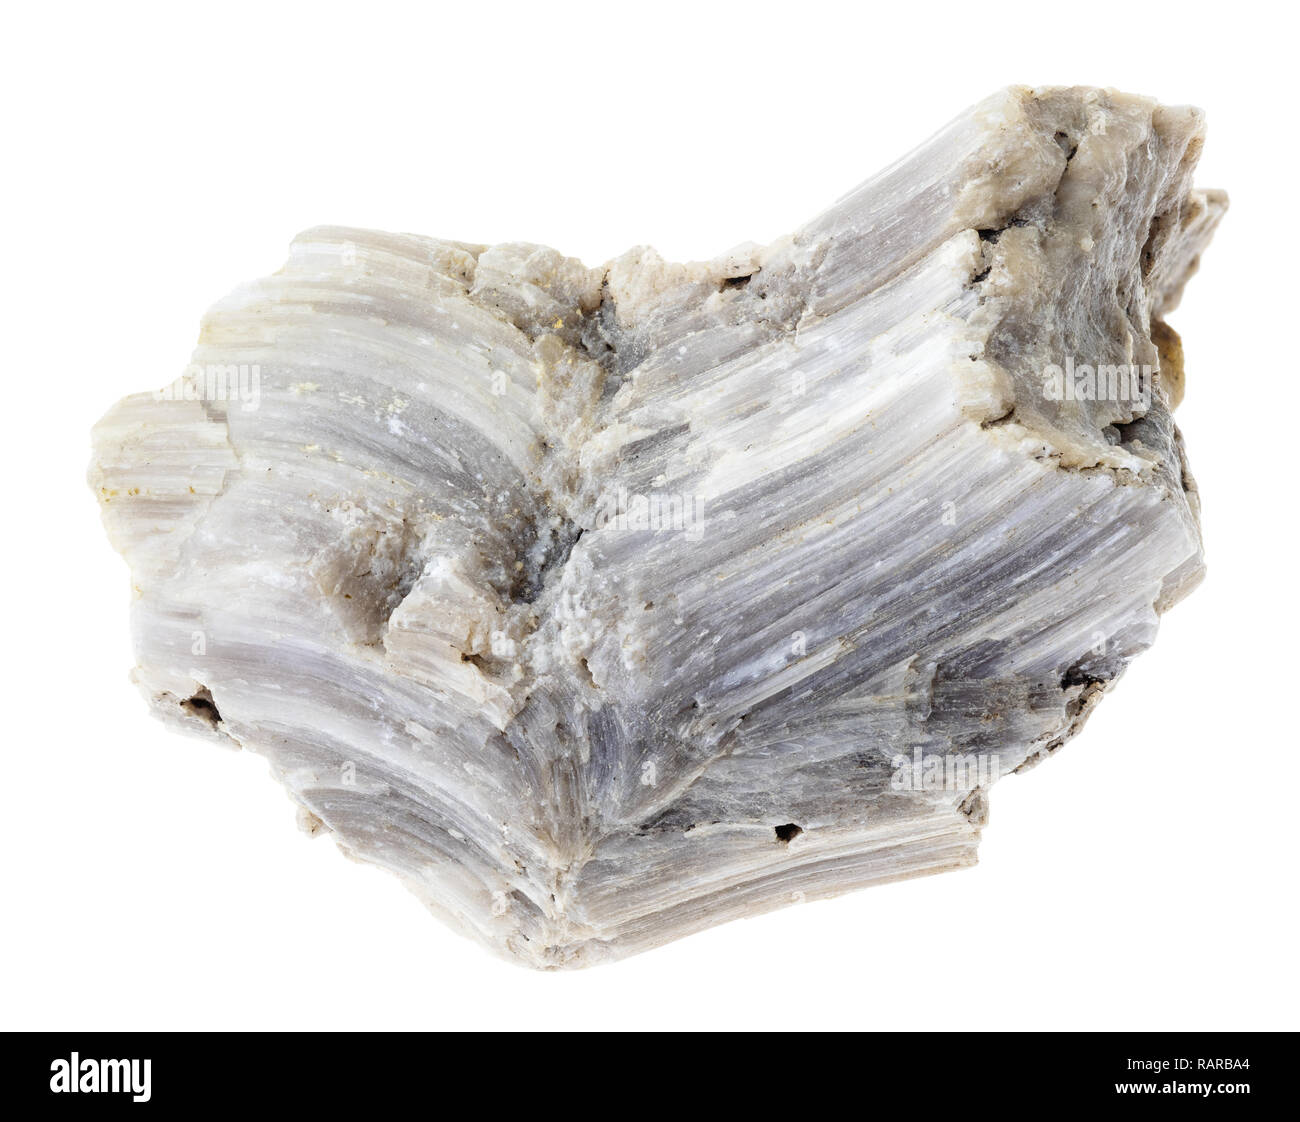 macro photography of natural mineral from geological collection - rough barite (baryte) stone on white background - Stock Image